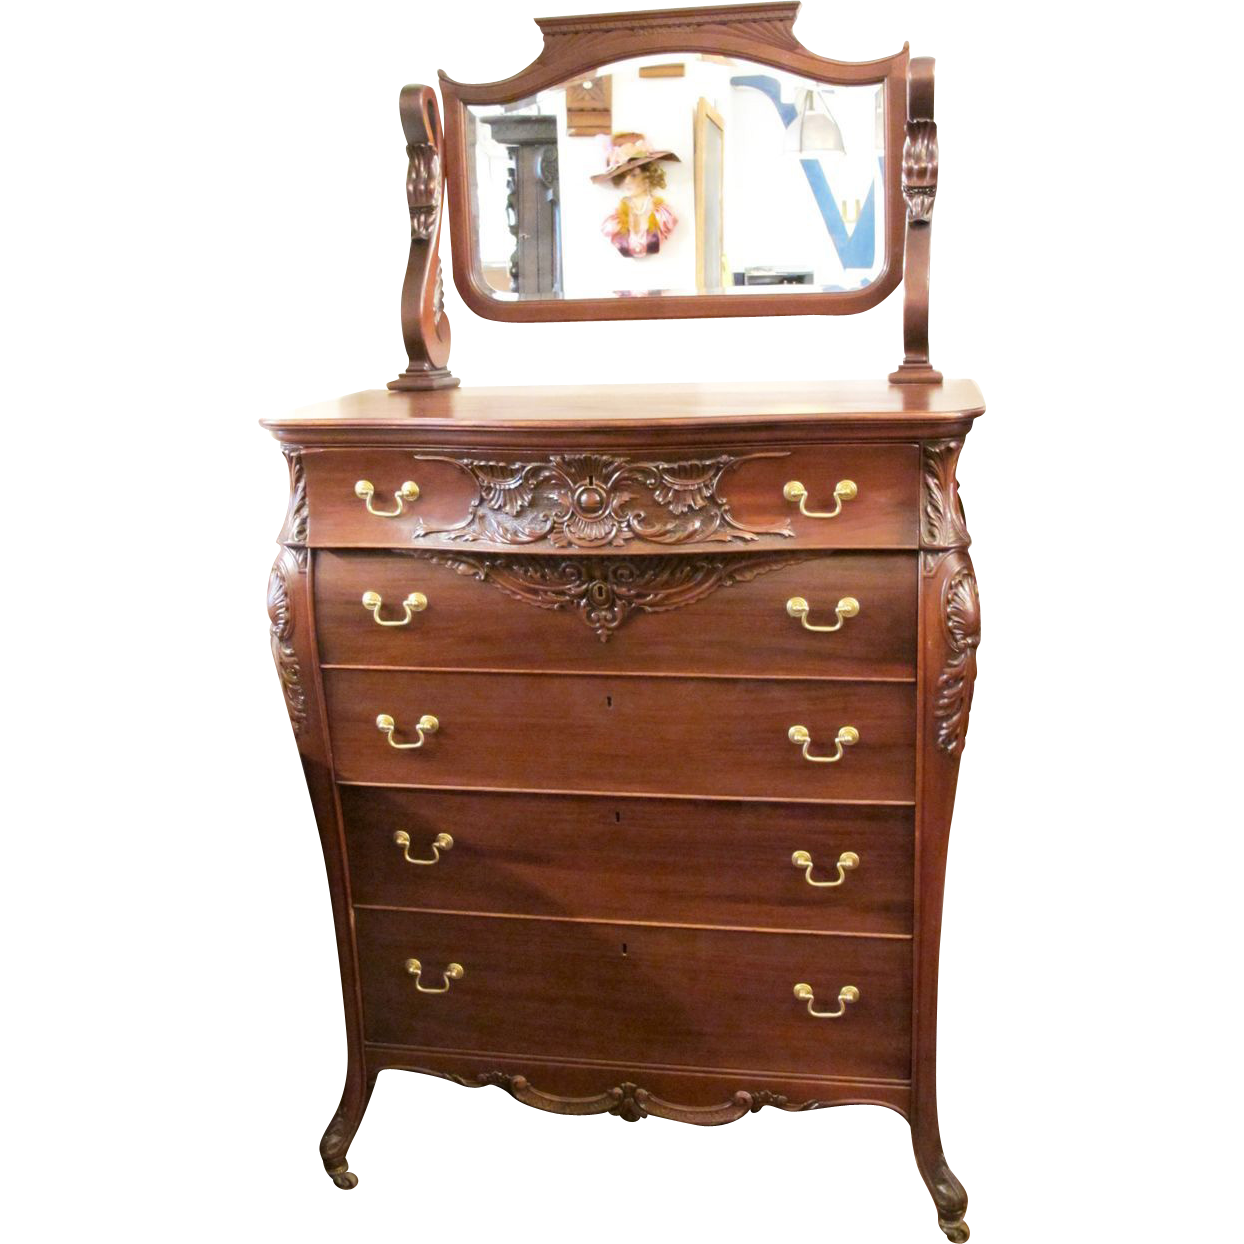 Tall mahogany dresser with beveled mirror and swan detail